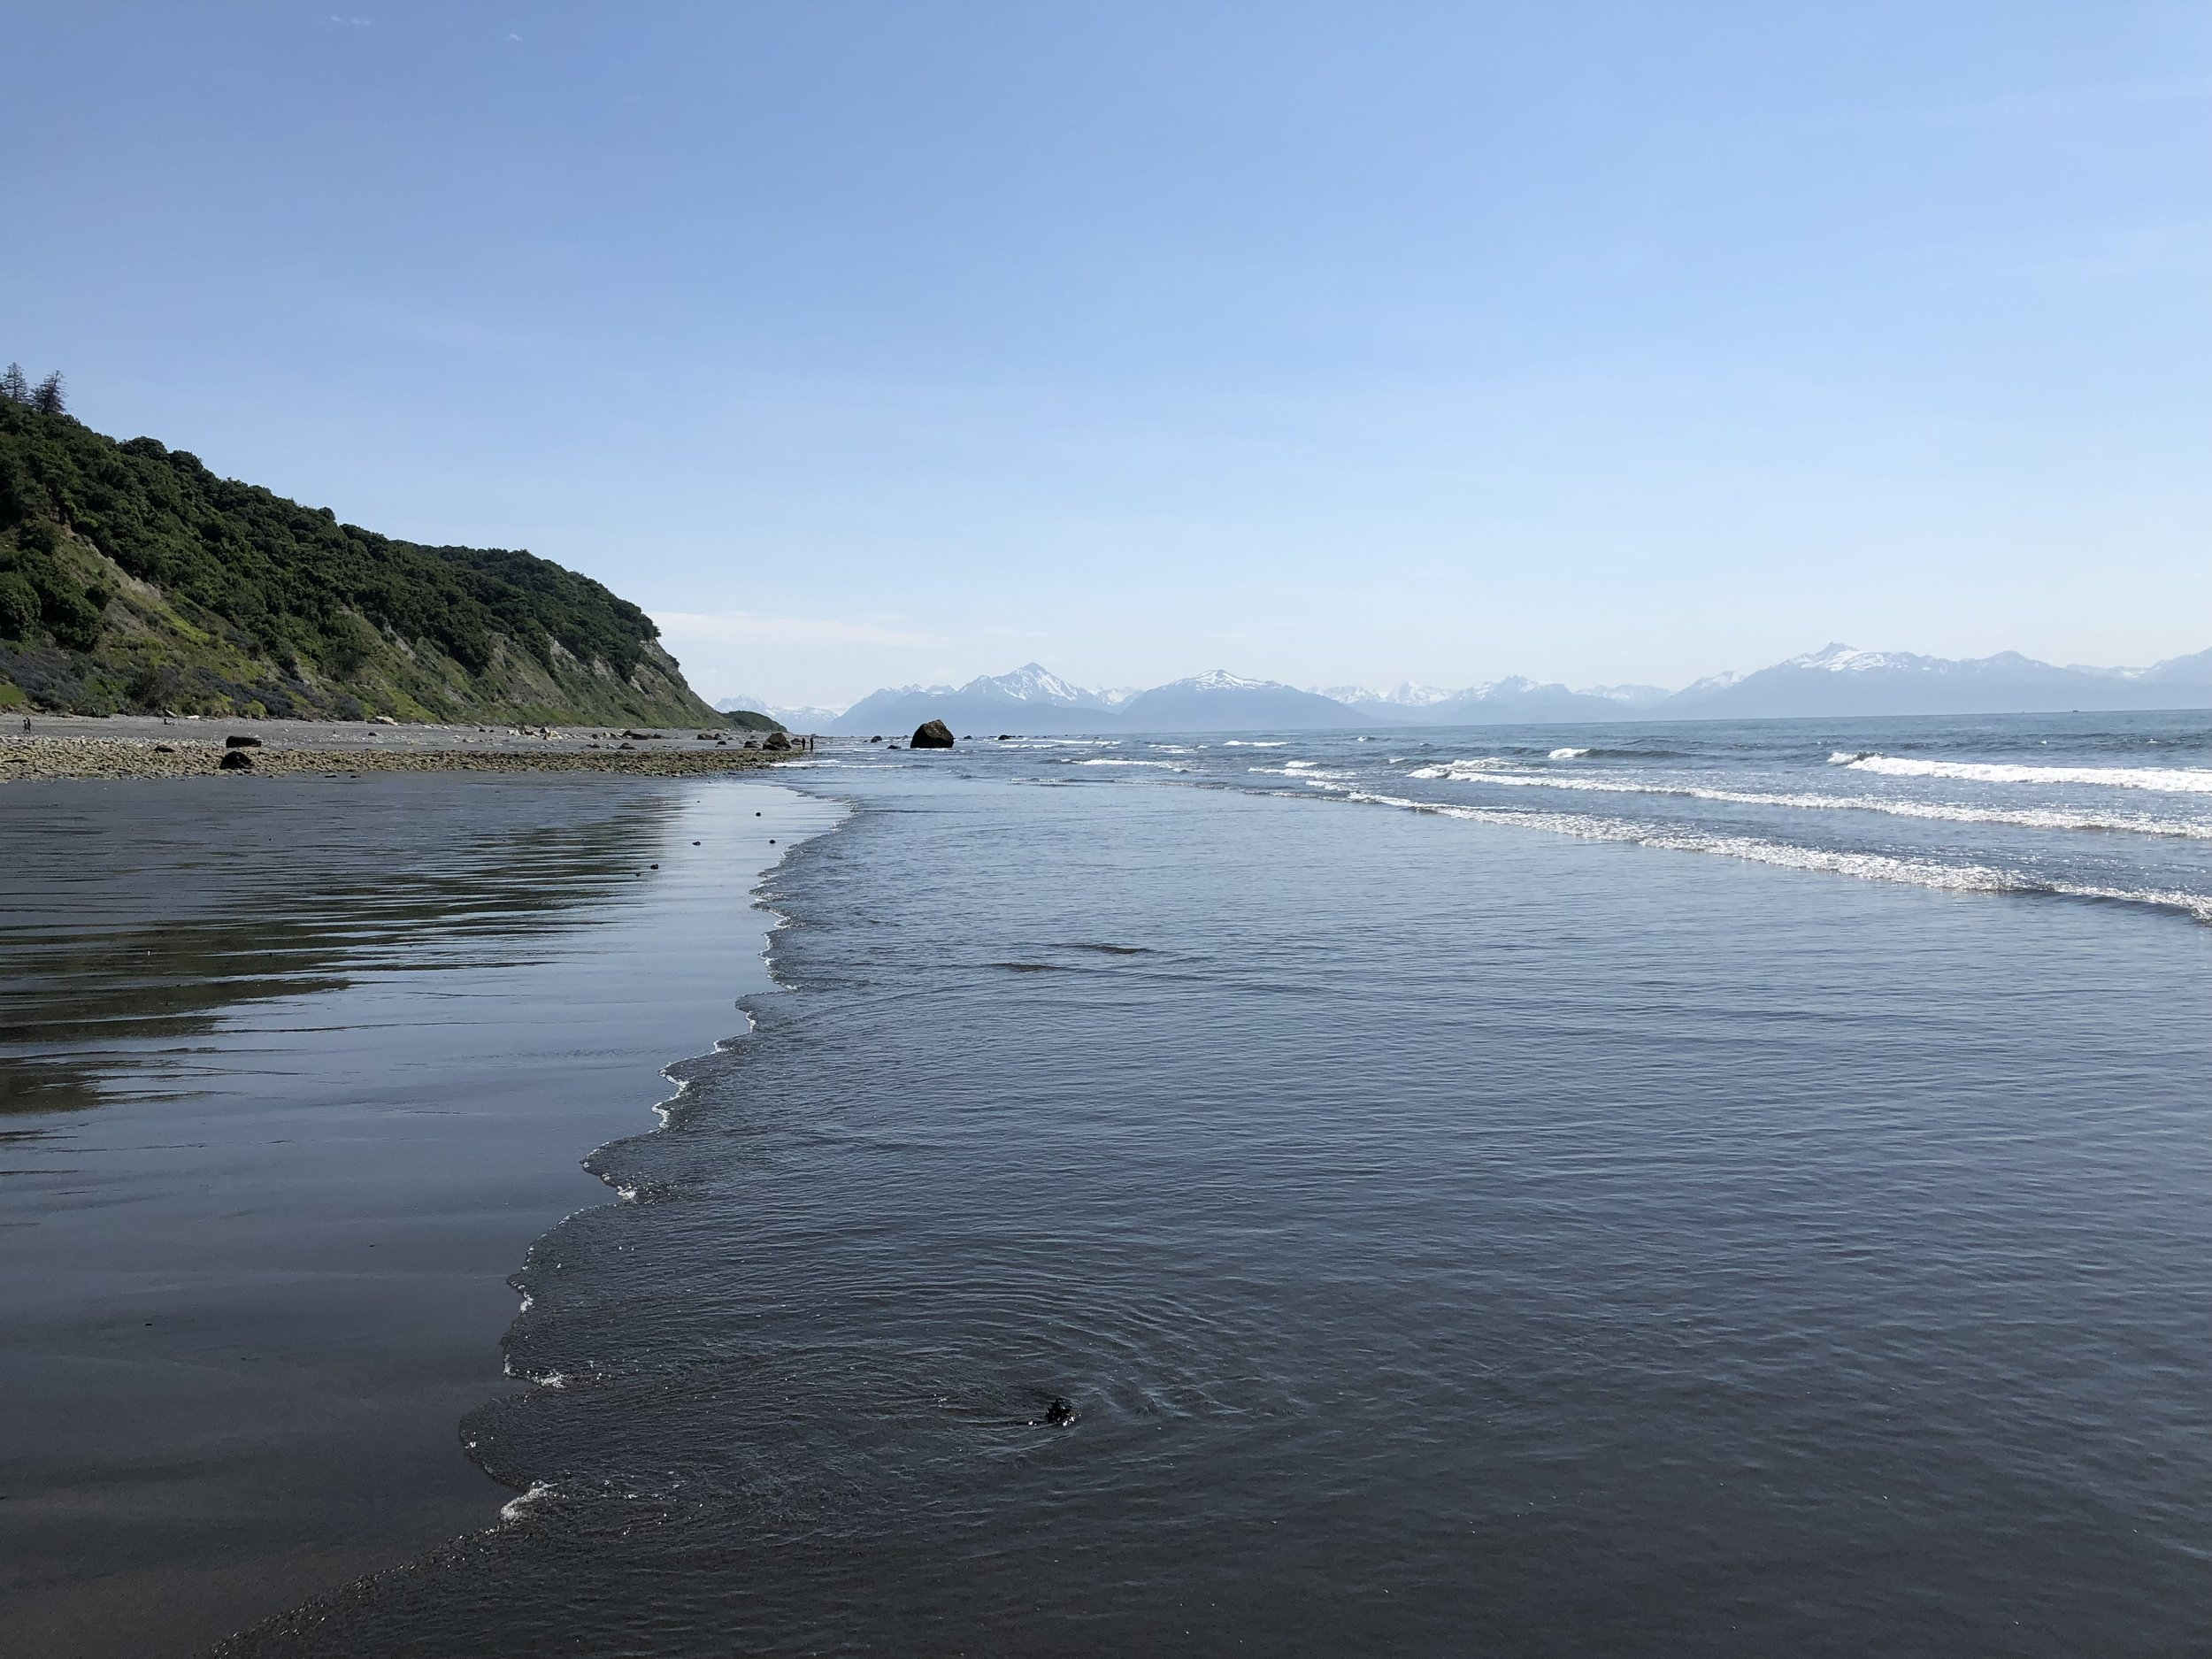 A day at the beach in Homer, Alaska down Diamond Ridge Road. (PS I did go in and it was glorious!)